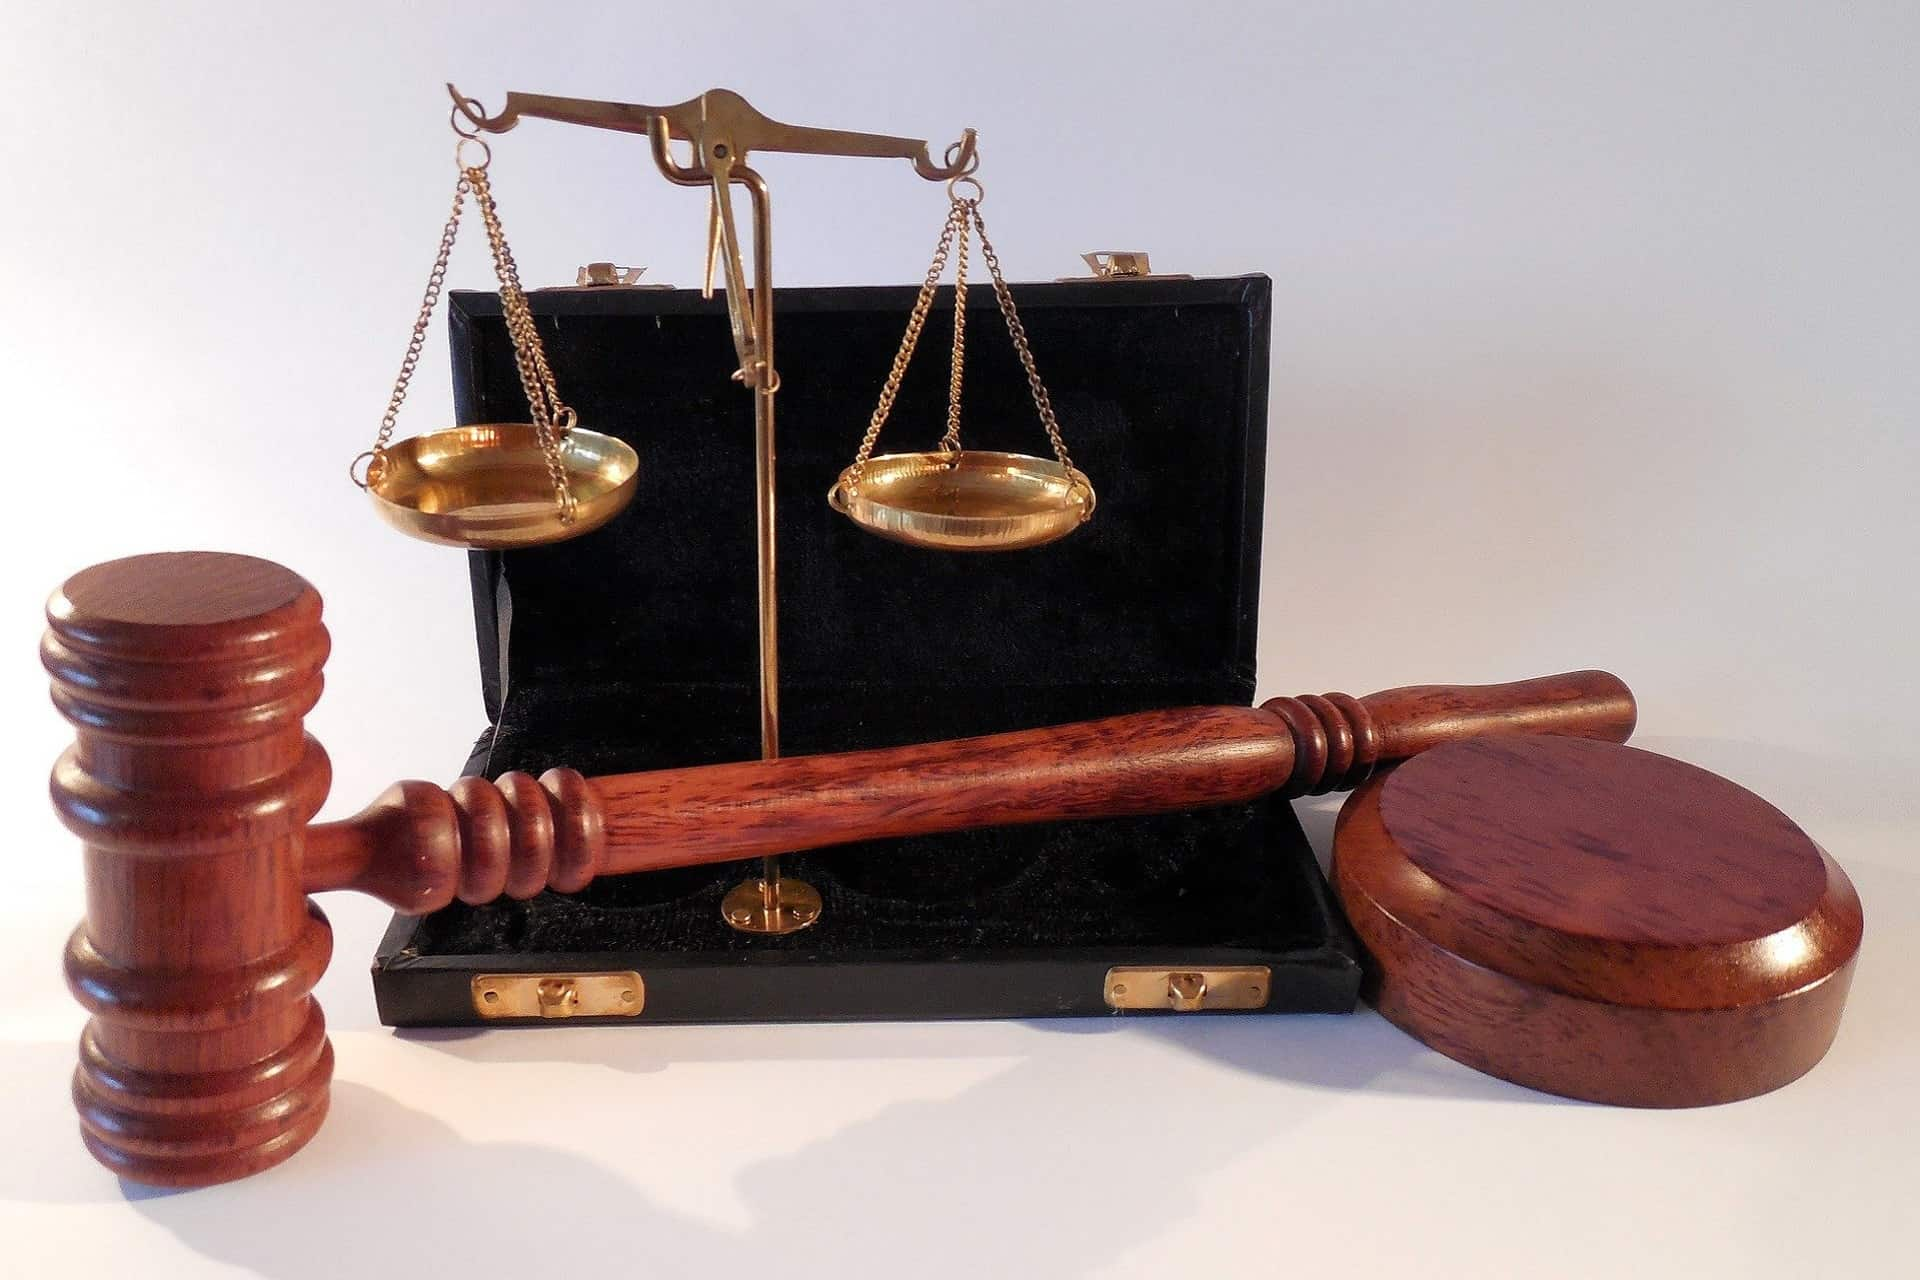 wooden gavel and bronze scales of justice